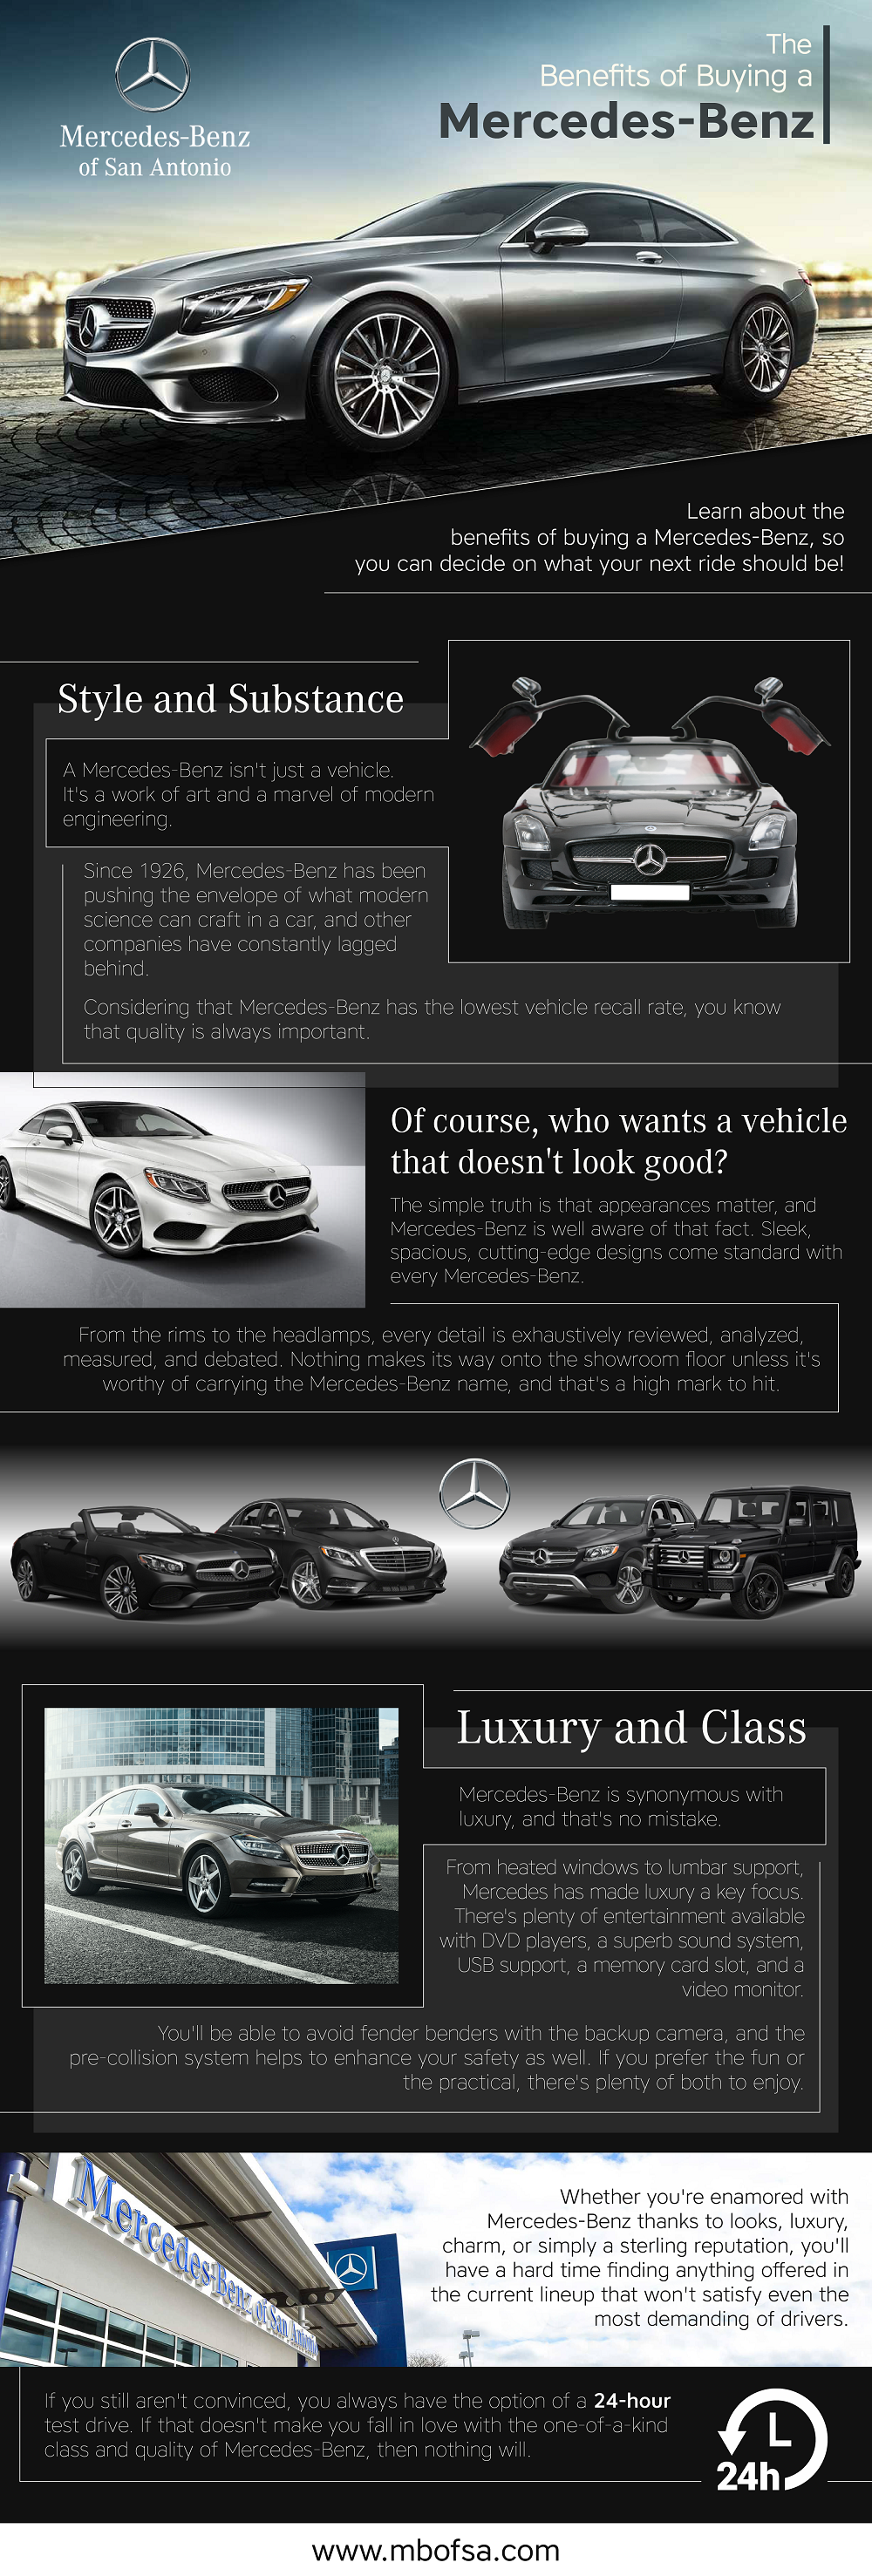 The Benefits of Buying a Mercedes-Benz